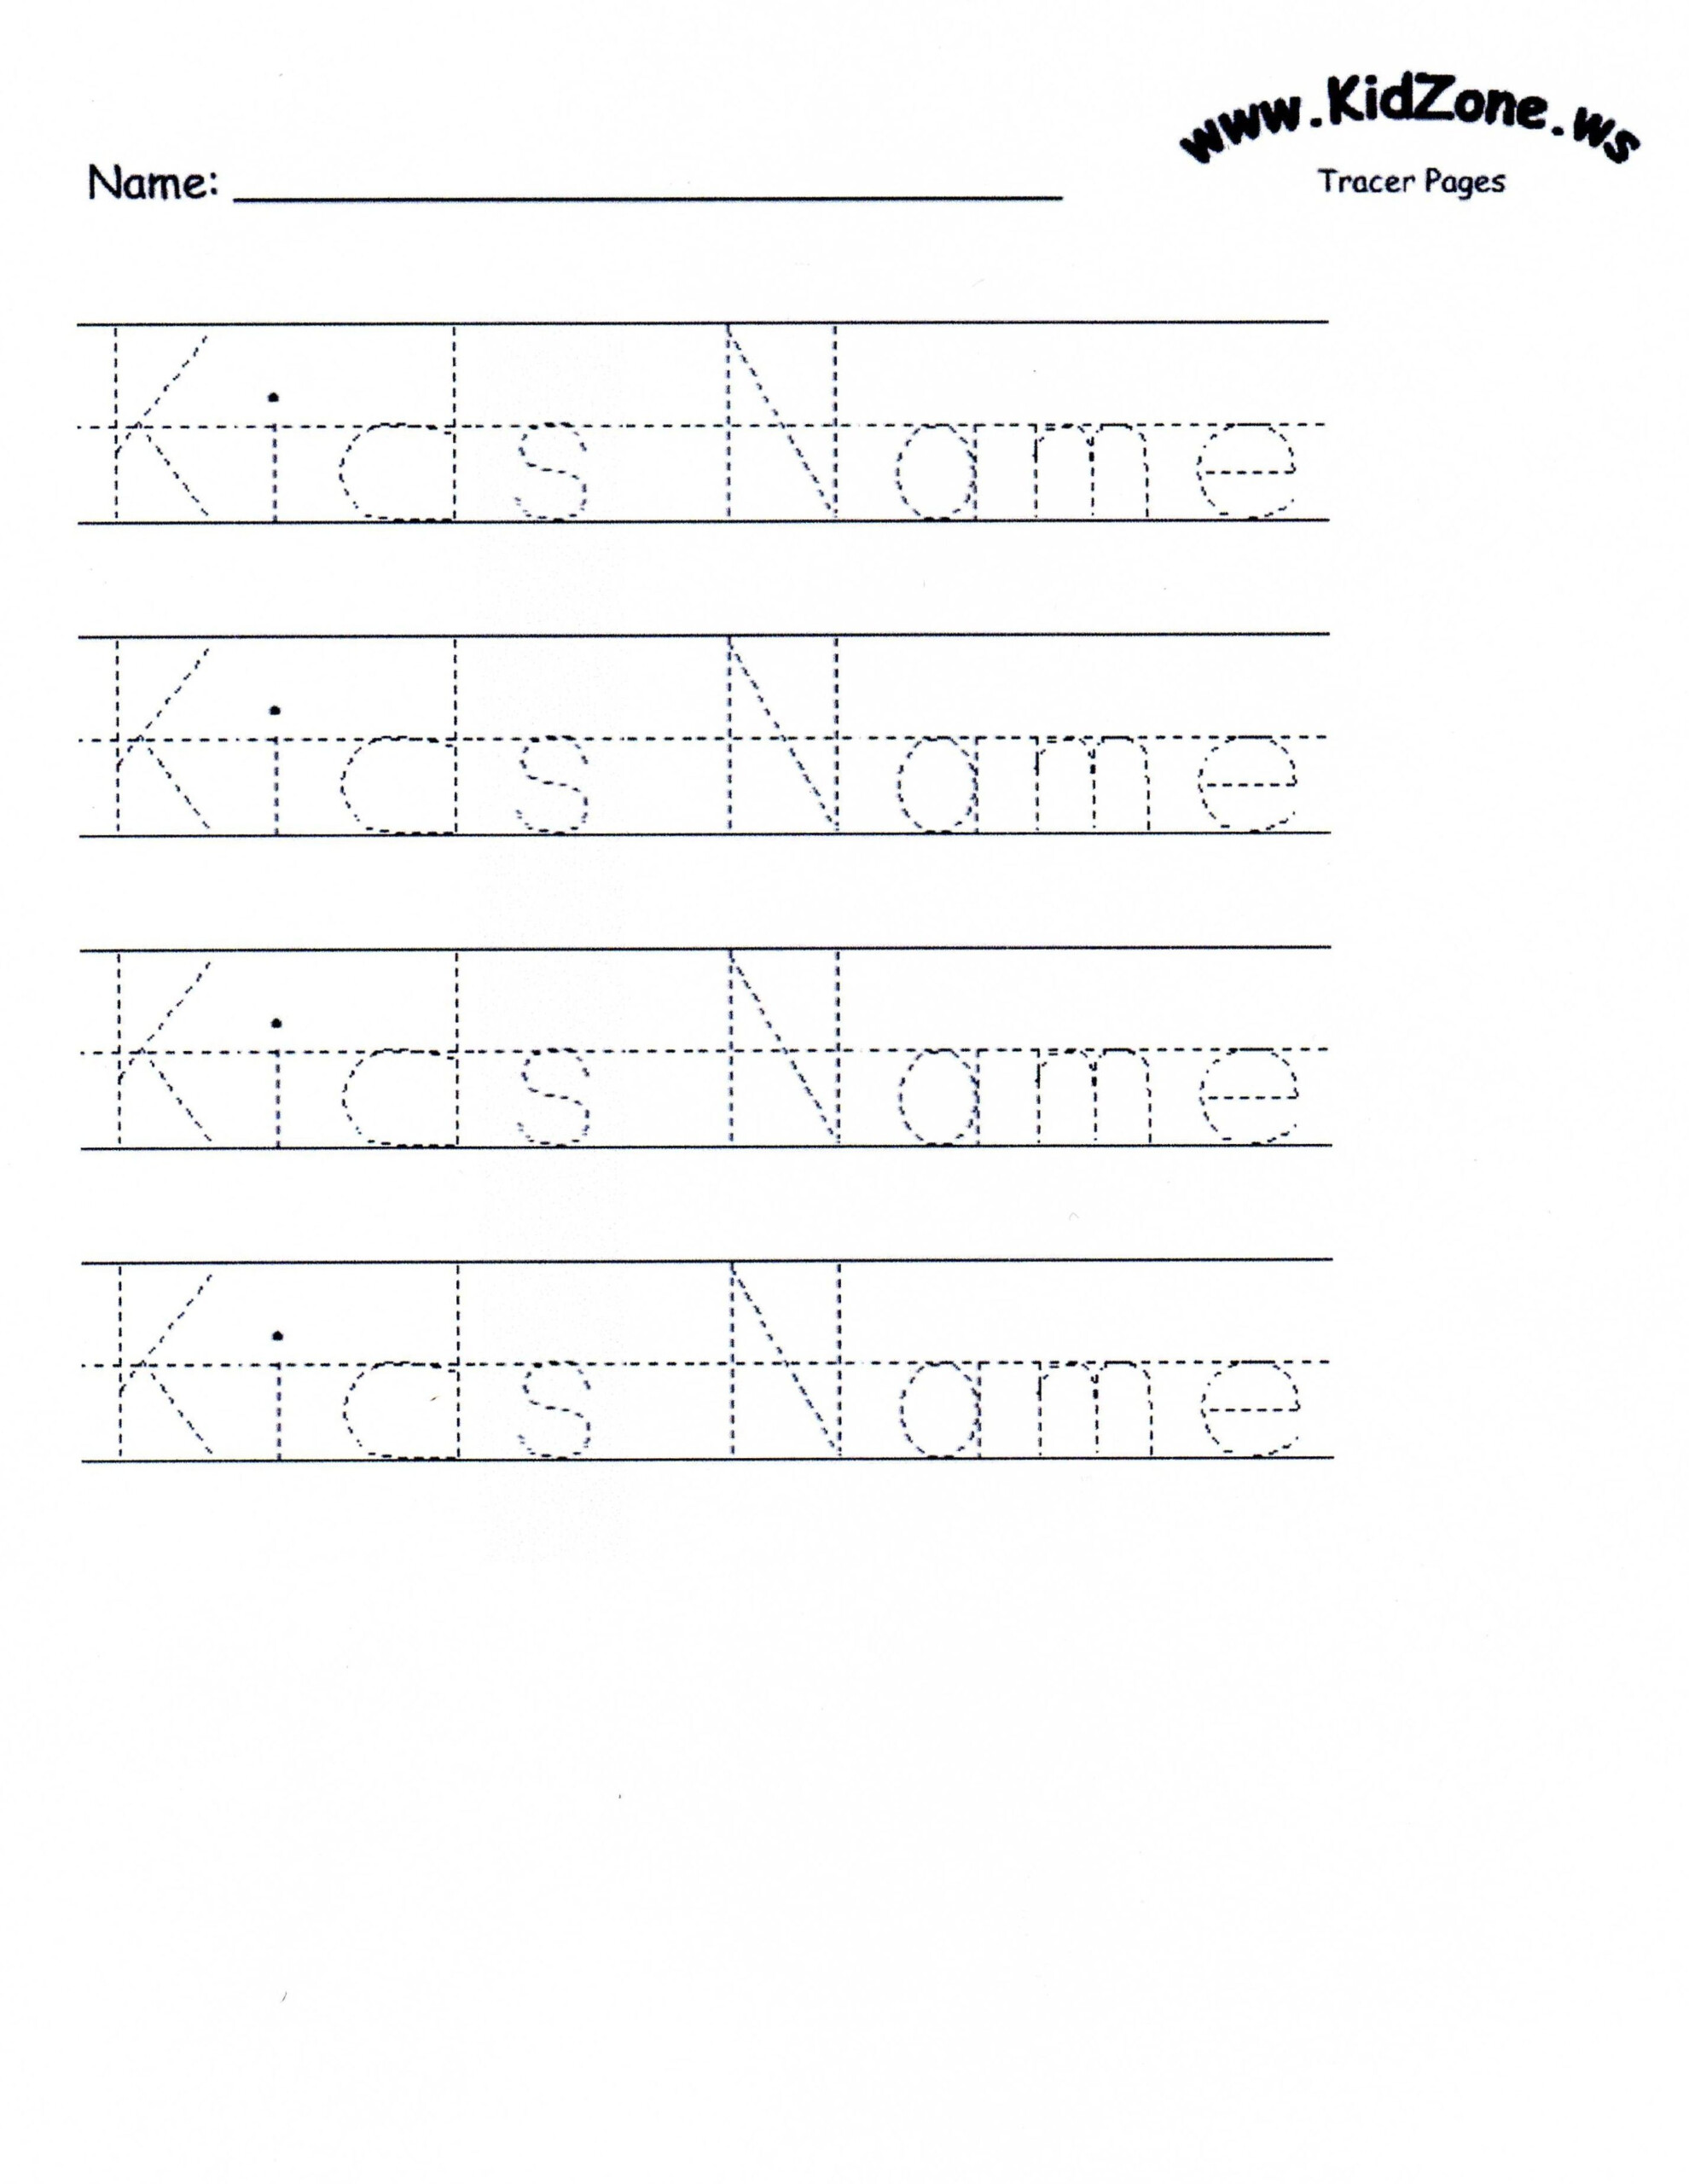 Custom Tracer Pages   Name Tracing Worksheets, Tracing